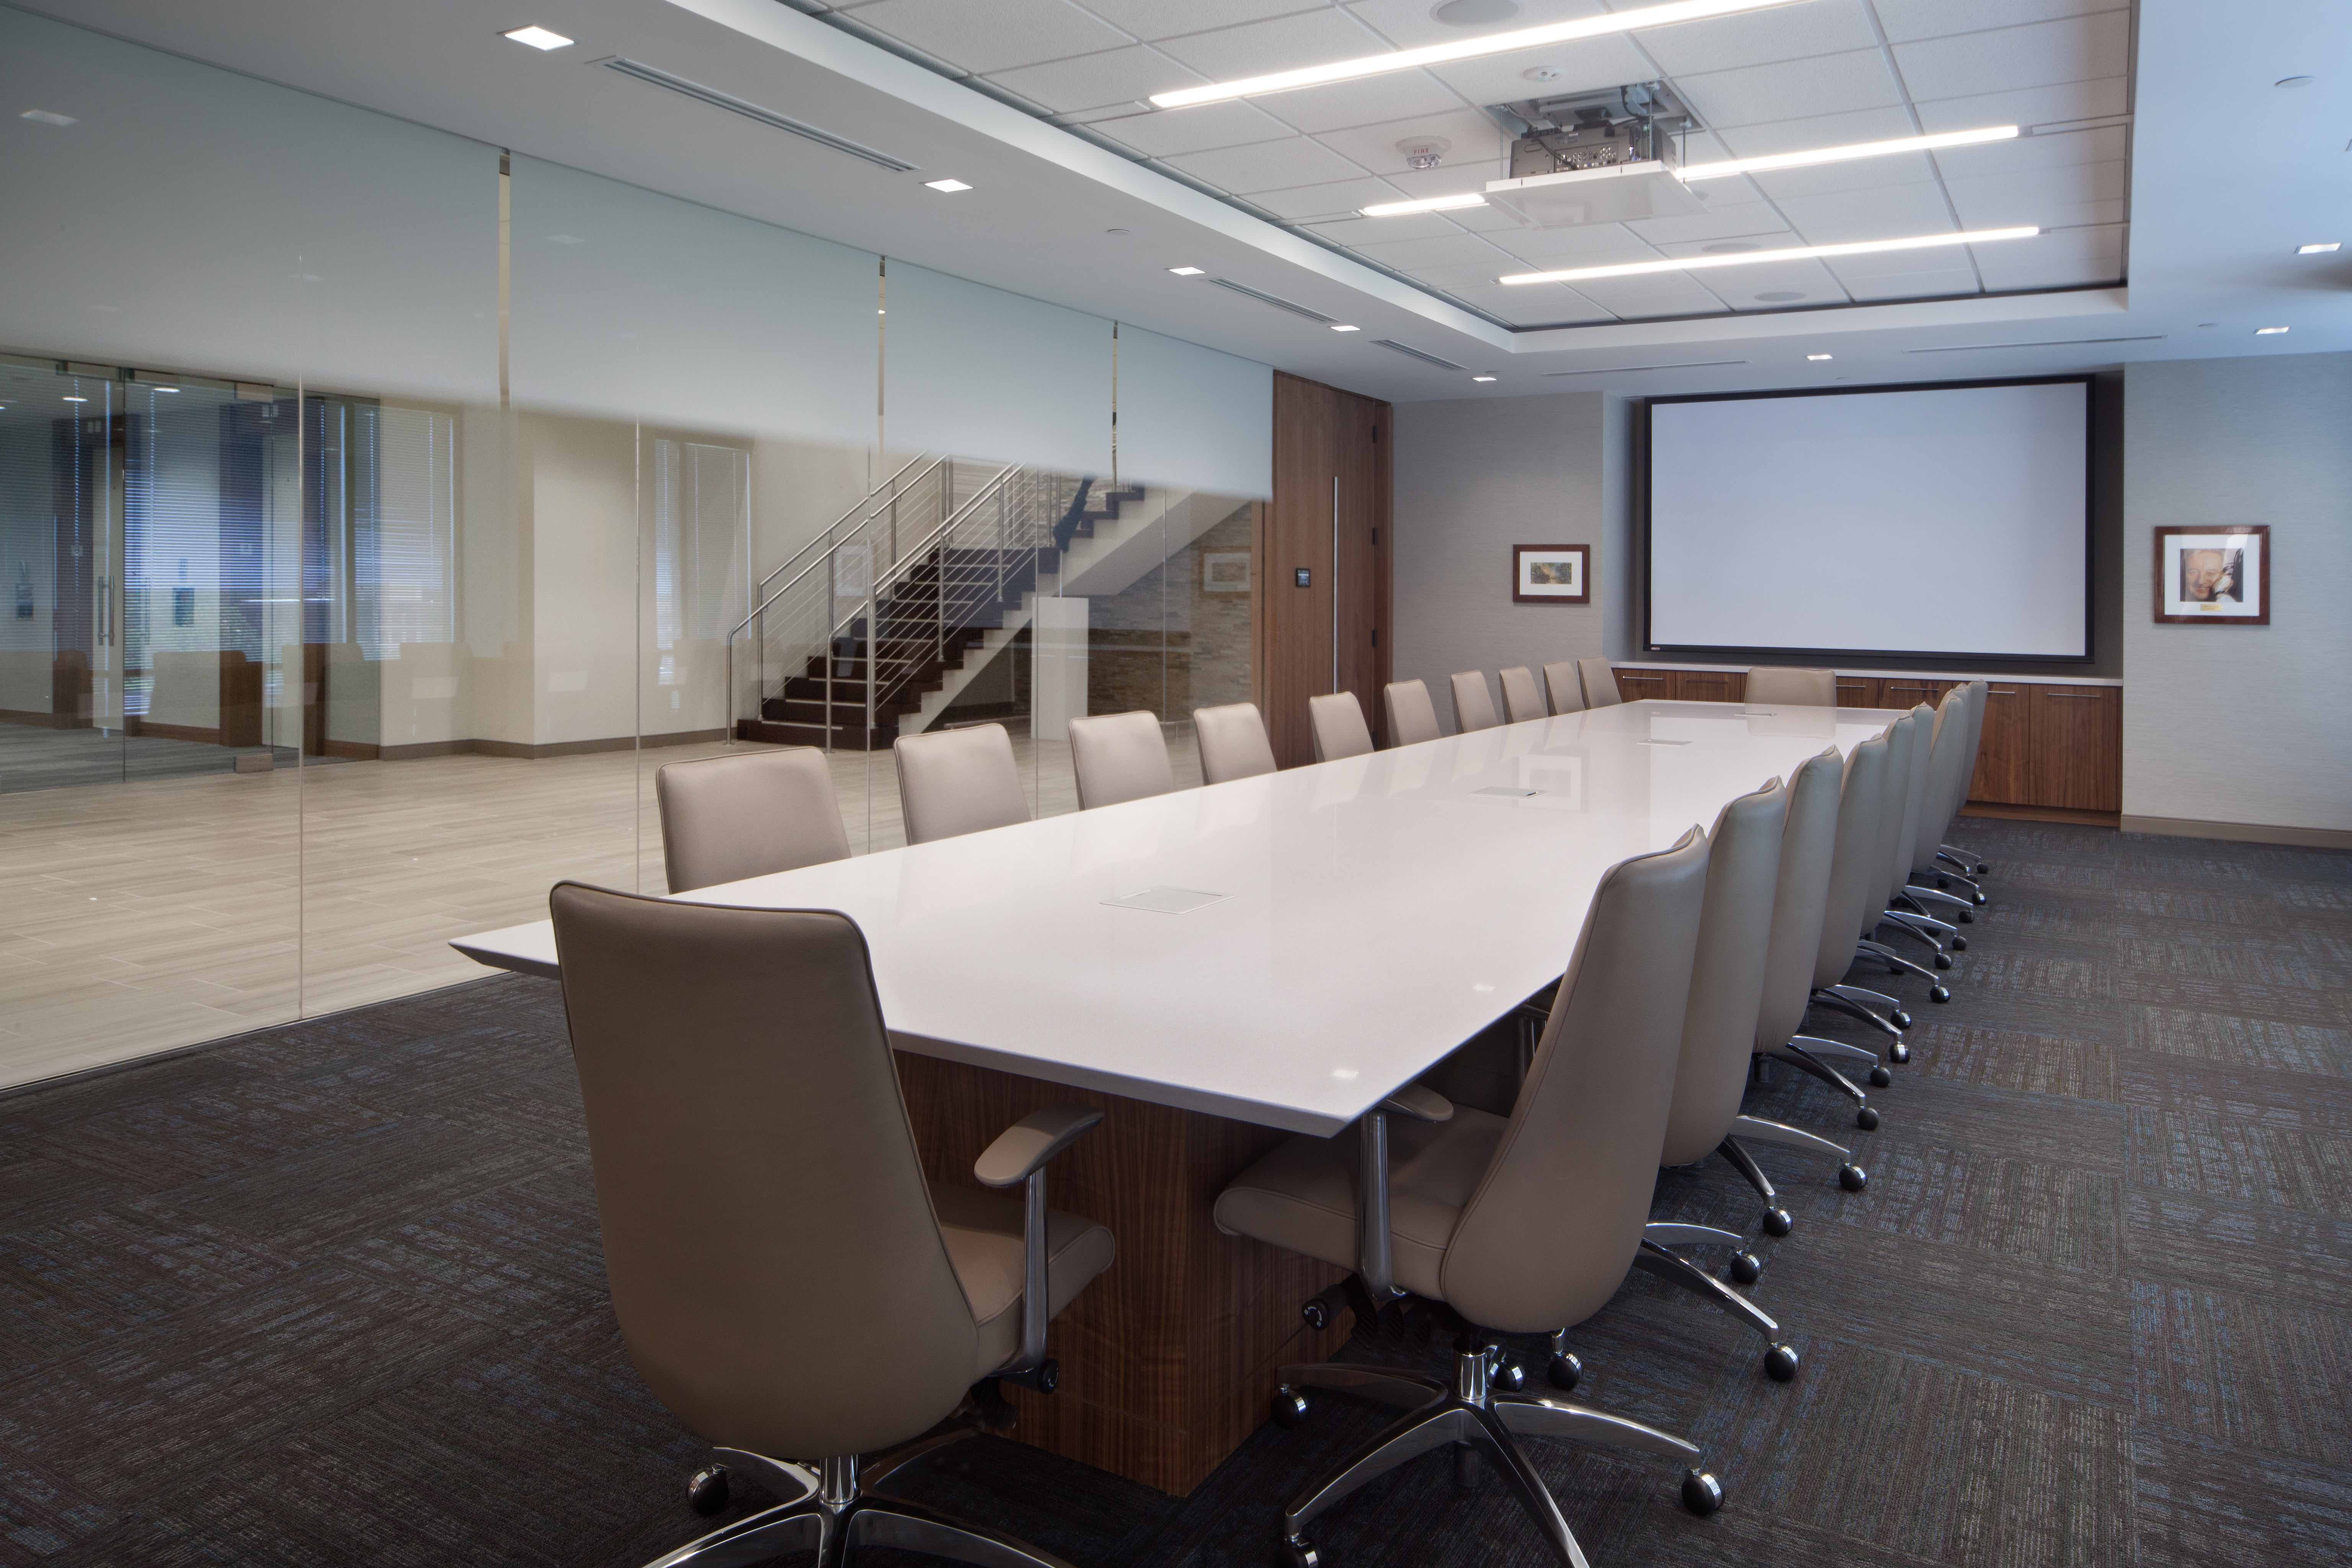 commercial audio  visual and lighting solutions by zio